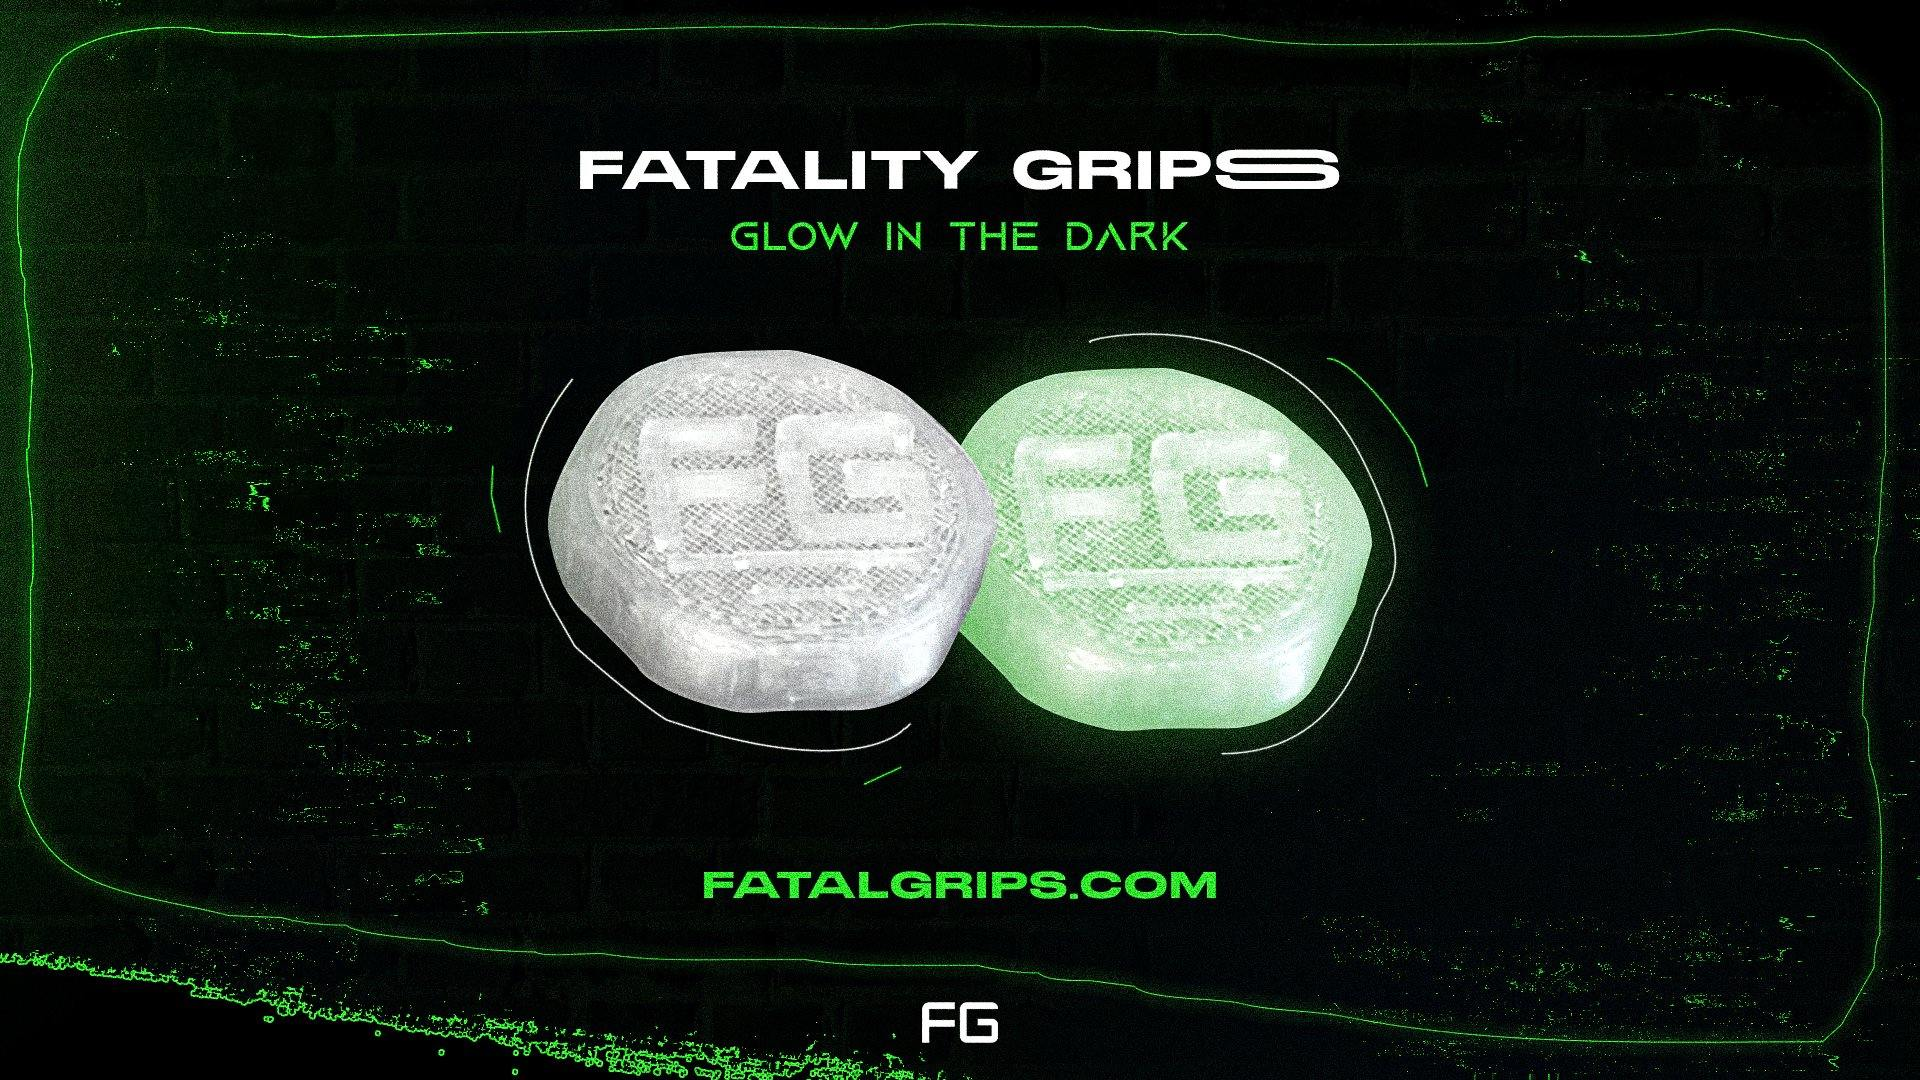 Fatality Grips - Fatal Grips